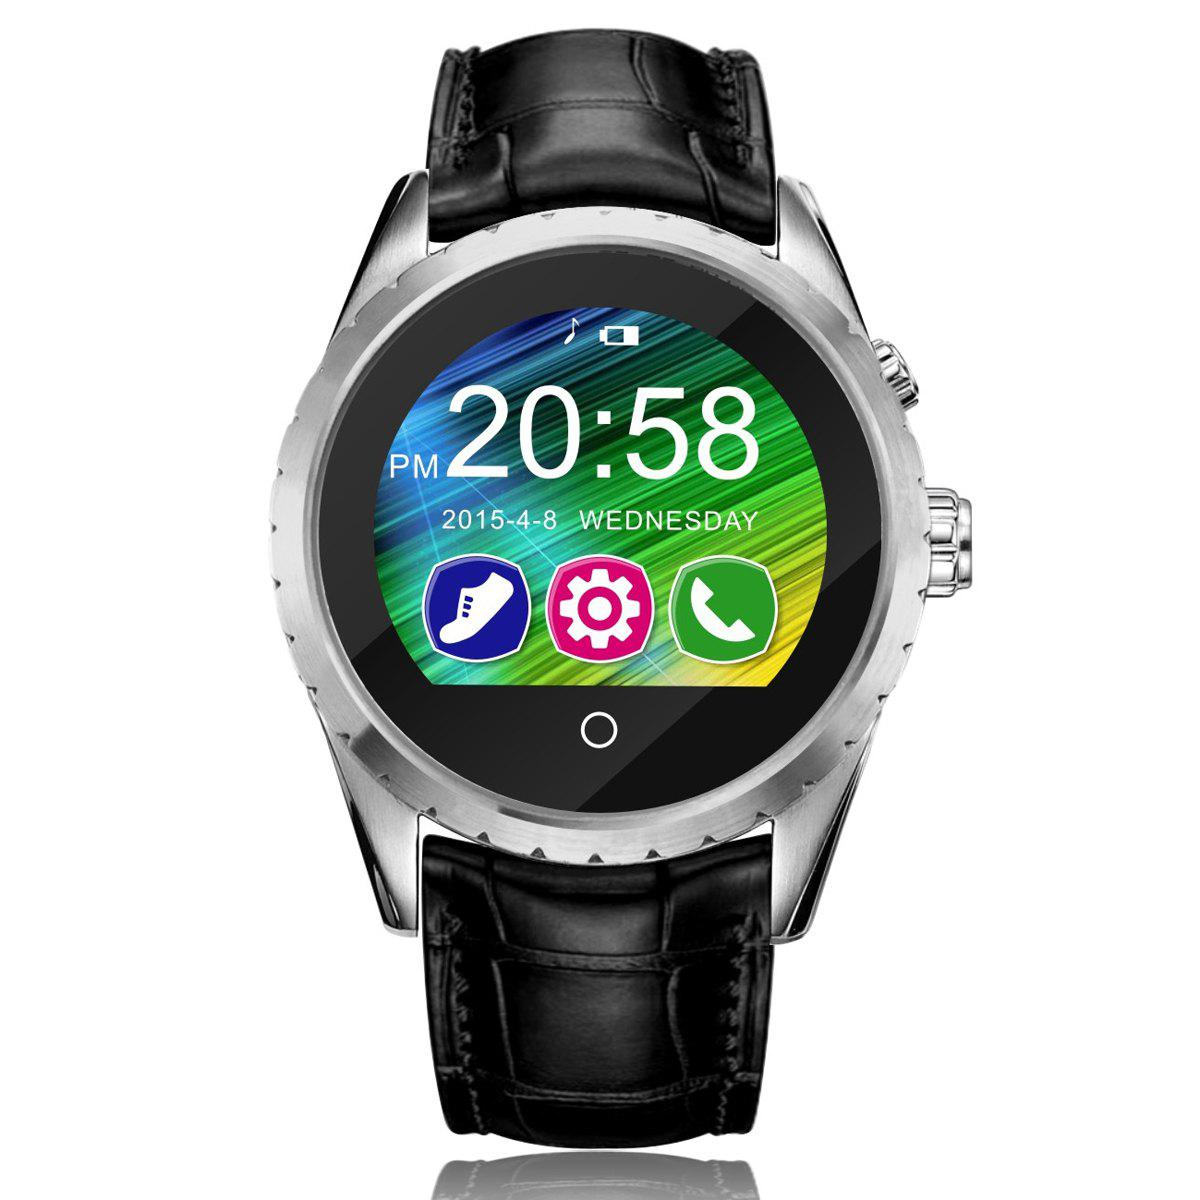 C5 Verre saphir Miroir Bluetooth 3.0 / Screen Display 4.0 montre Smart Watch IPS - Argent LEATHER BAND